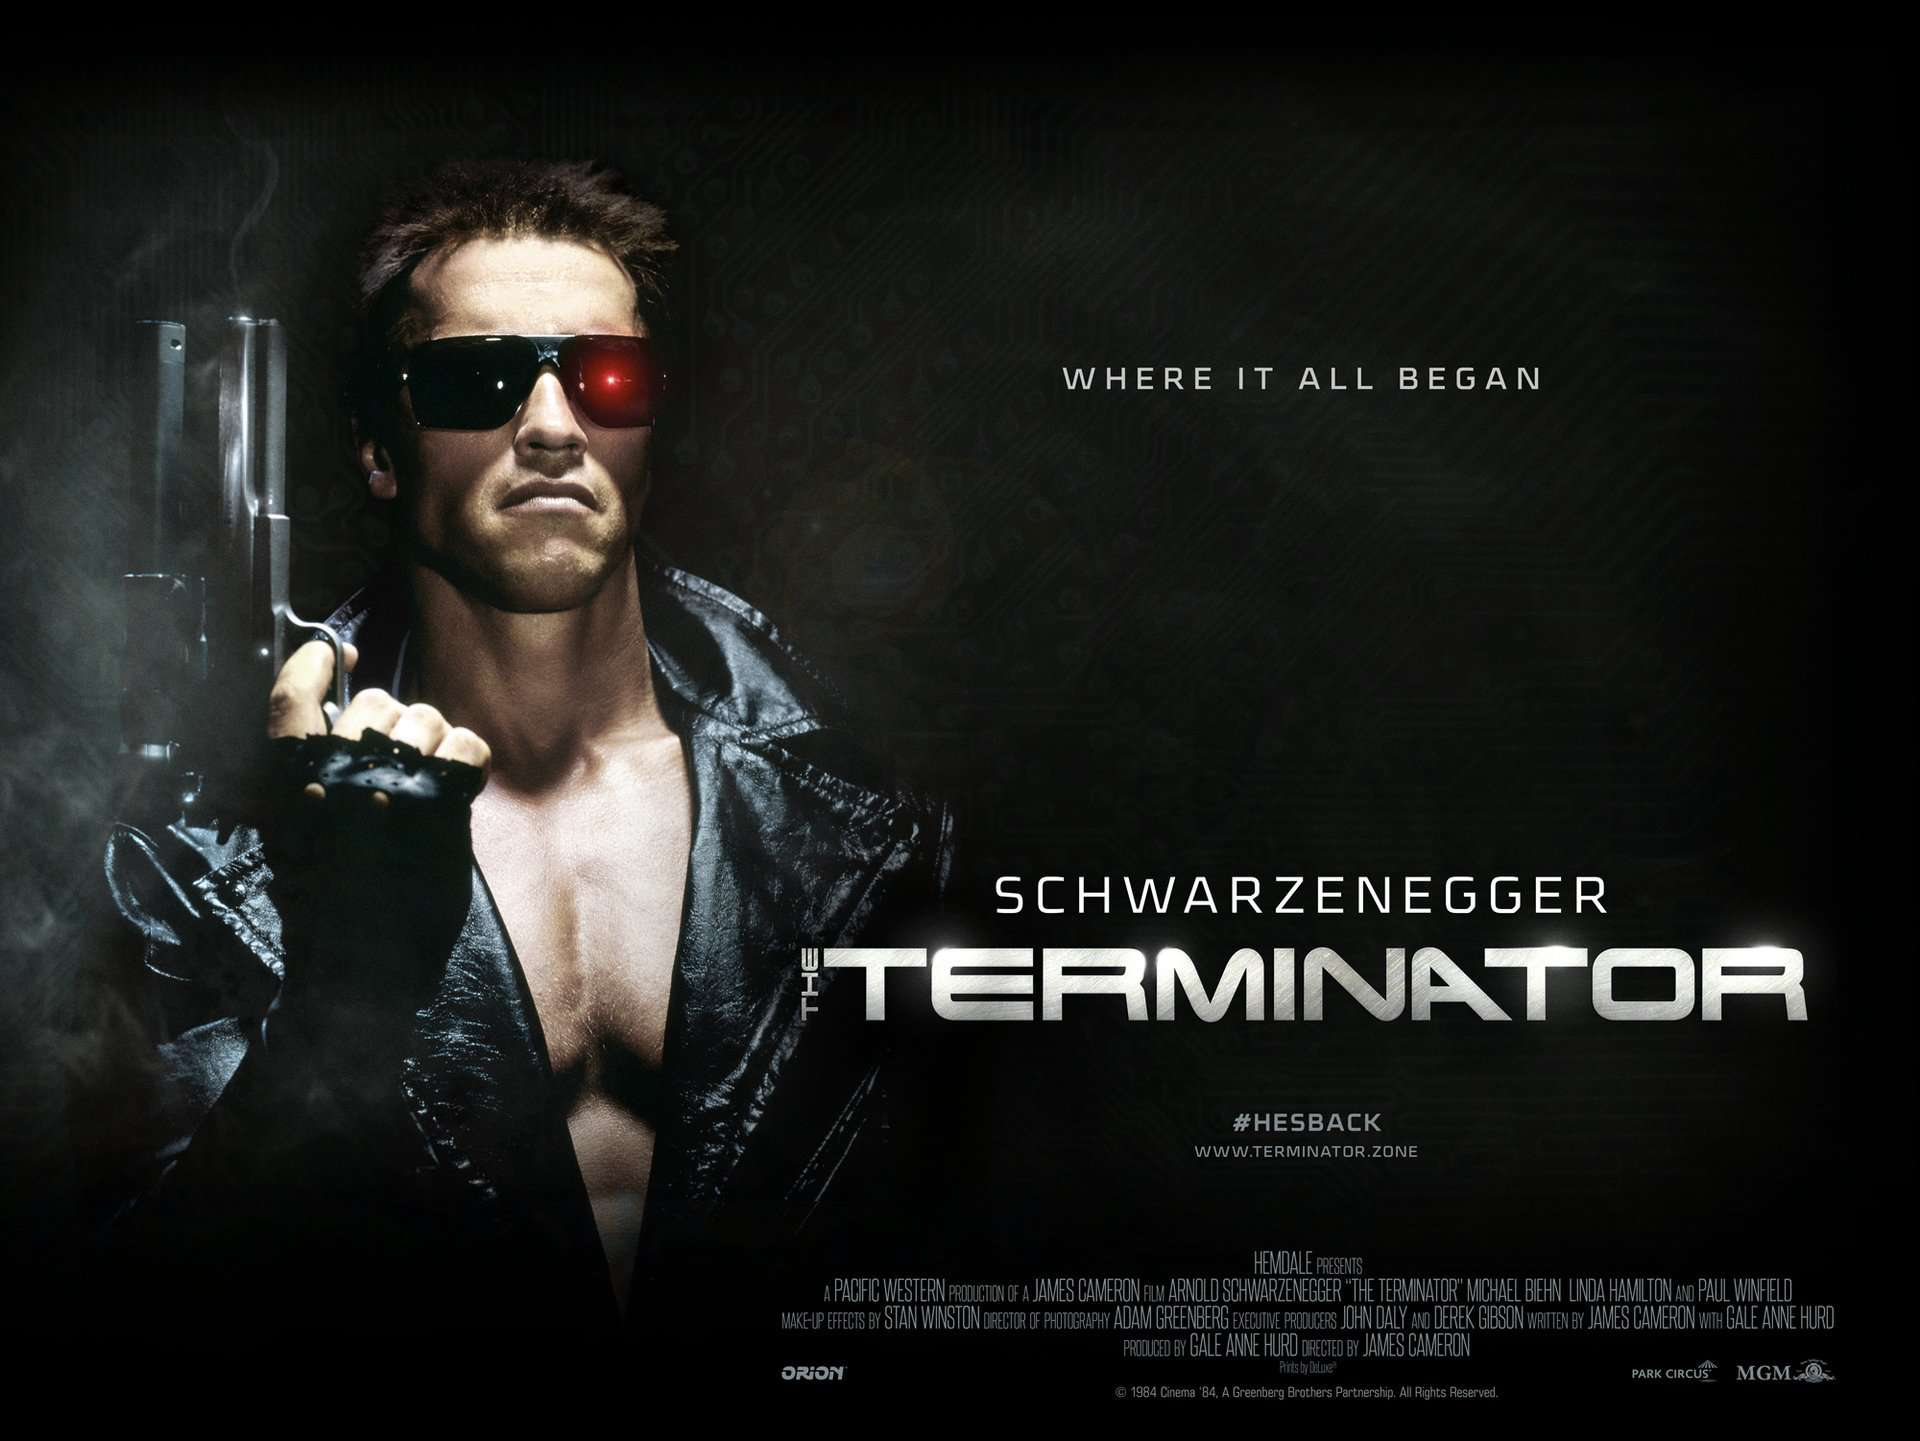 Photo of Terminator 6 – A marzo 2018 la troupe sarà in Europa per le riprese